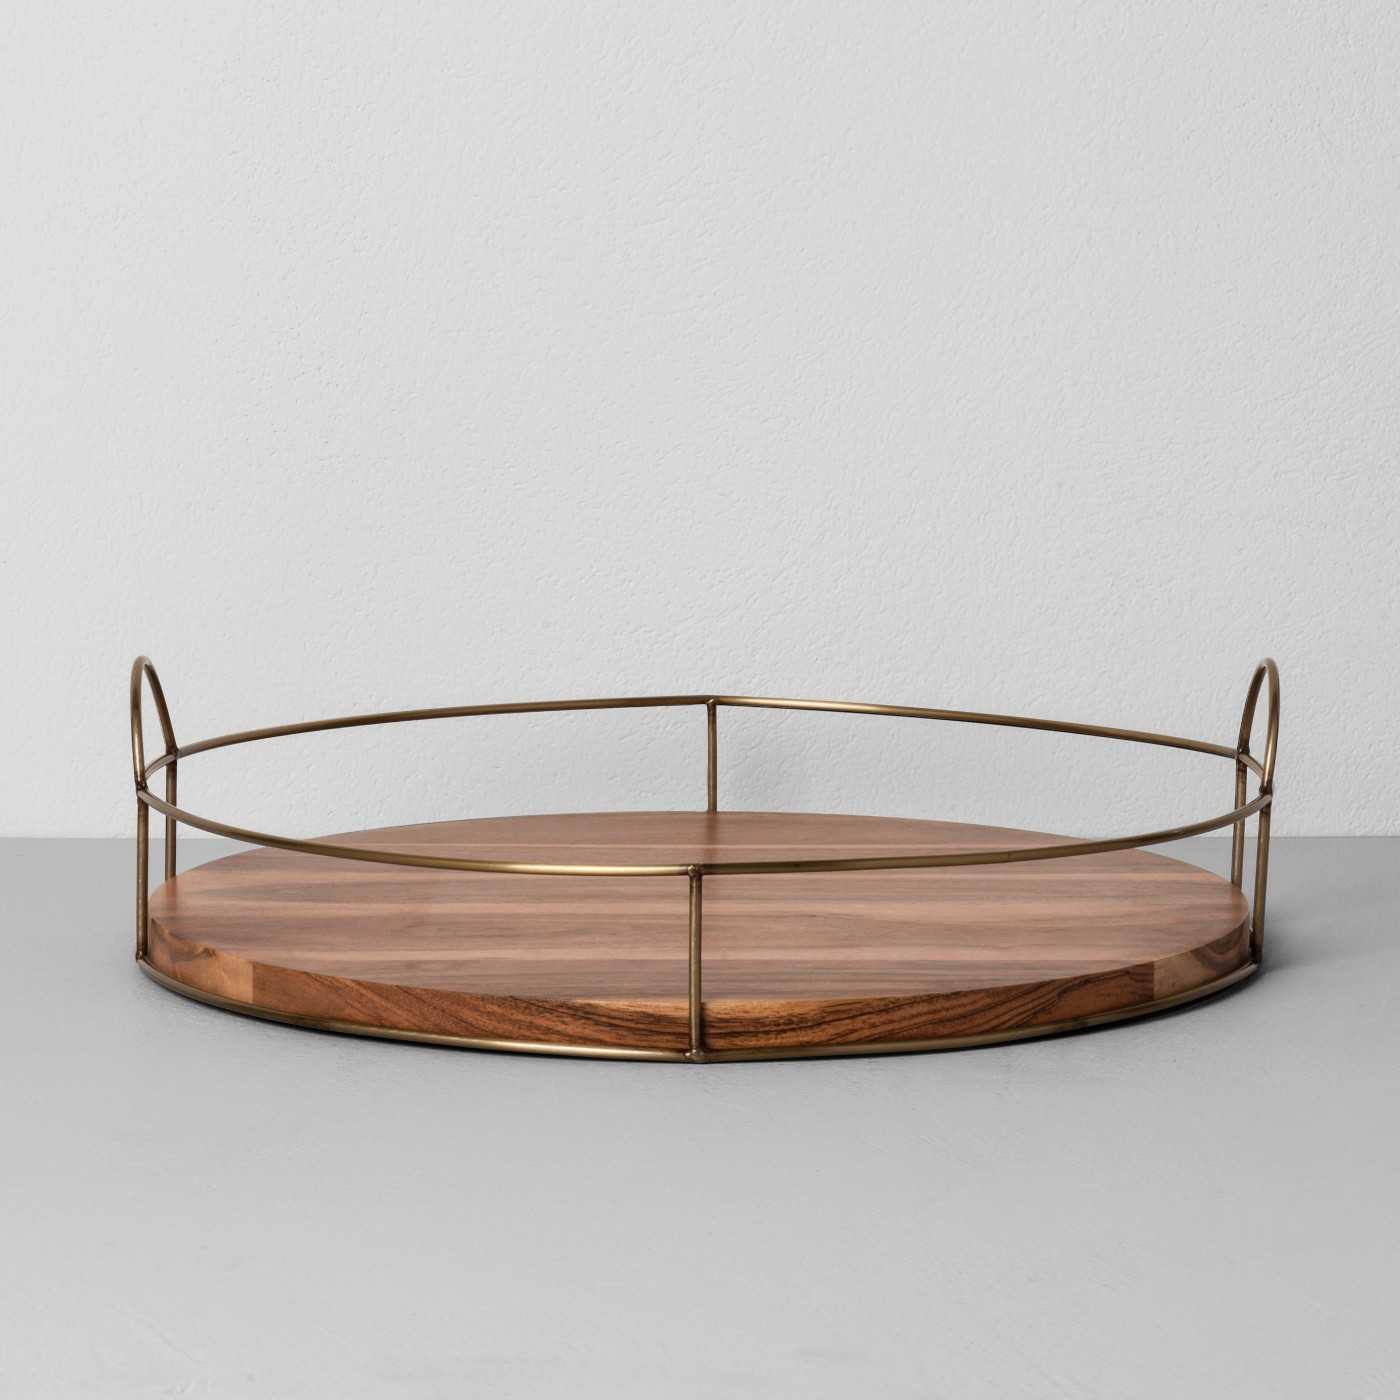 "Round Wood and Wire Tray (16"") - Hearth & Hand™ with Magnolia - image 1 of 5"